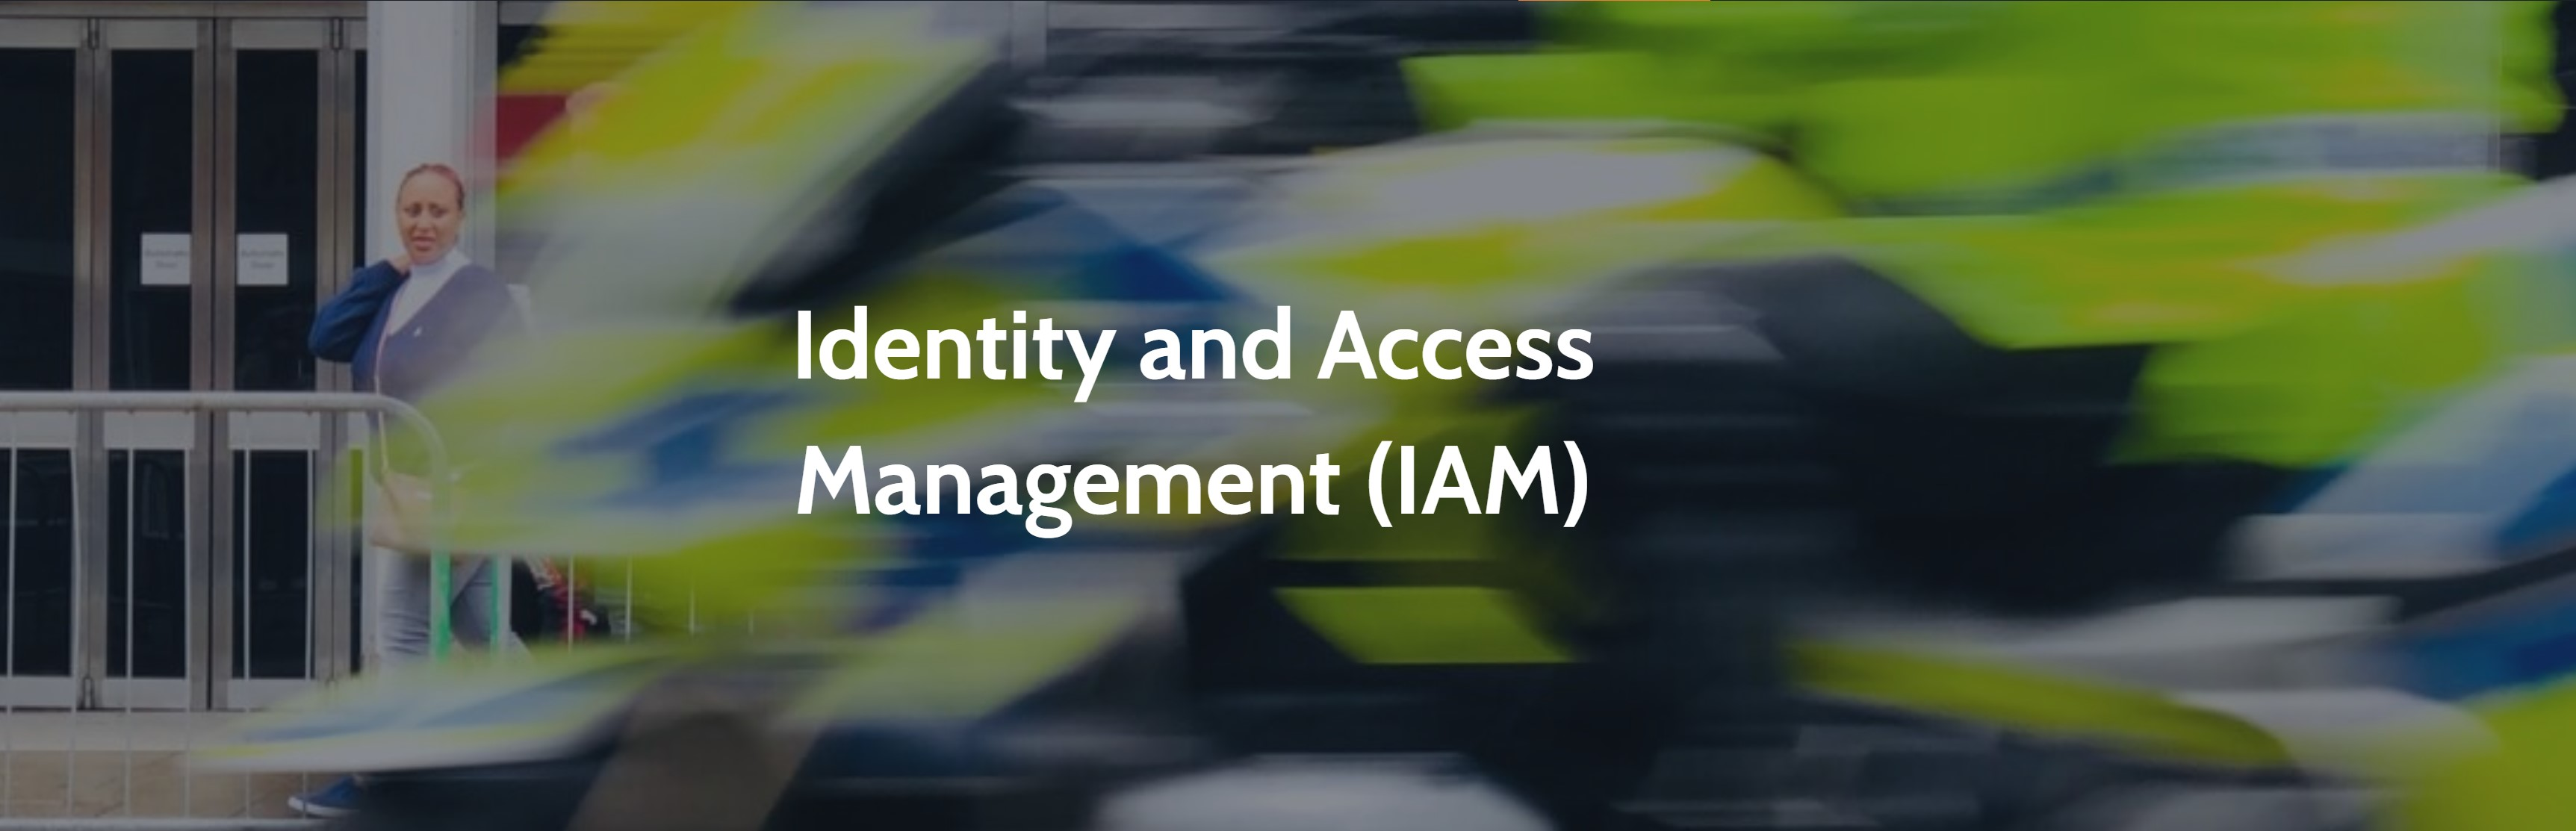 Blurred image of the police motorbike passing someone in the street with the words Identity Access Management across